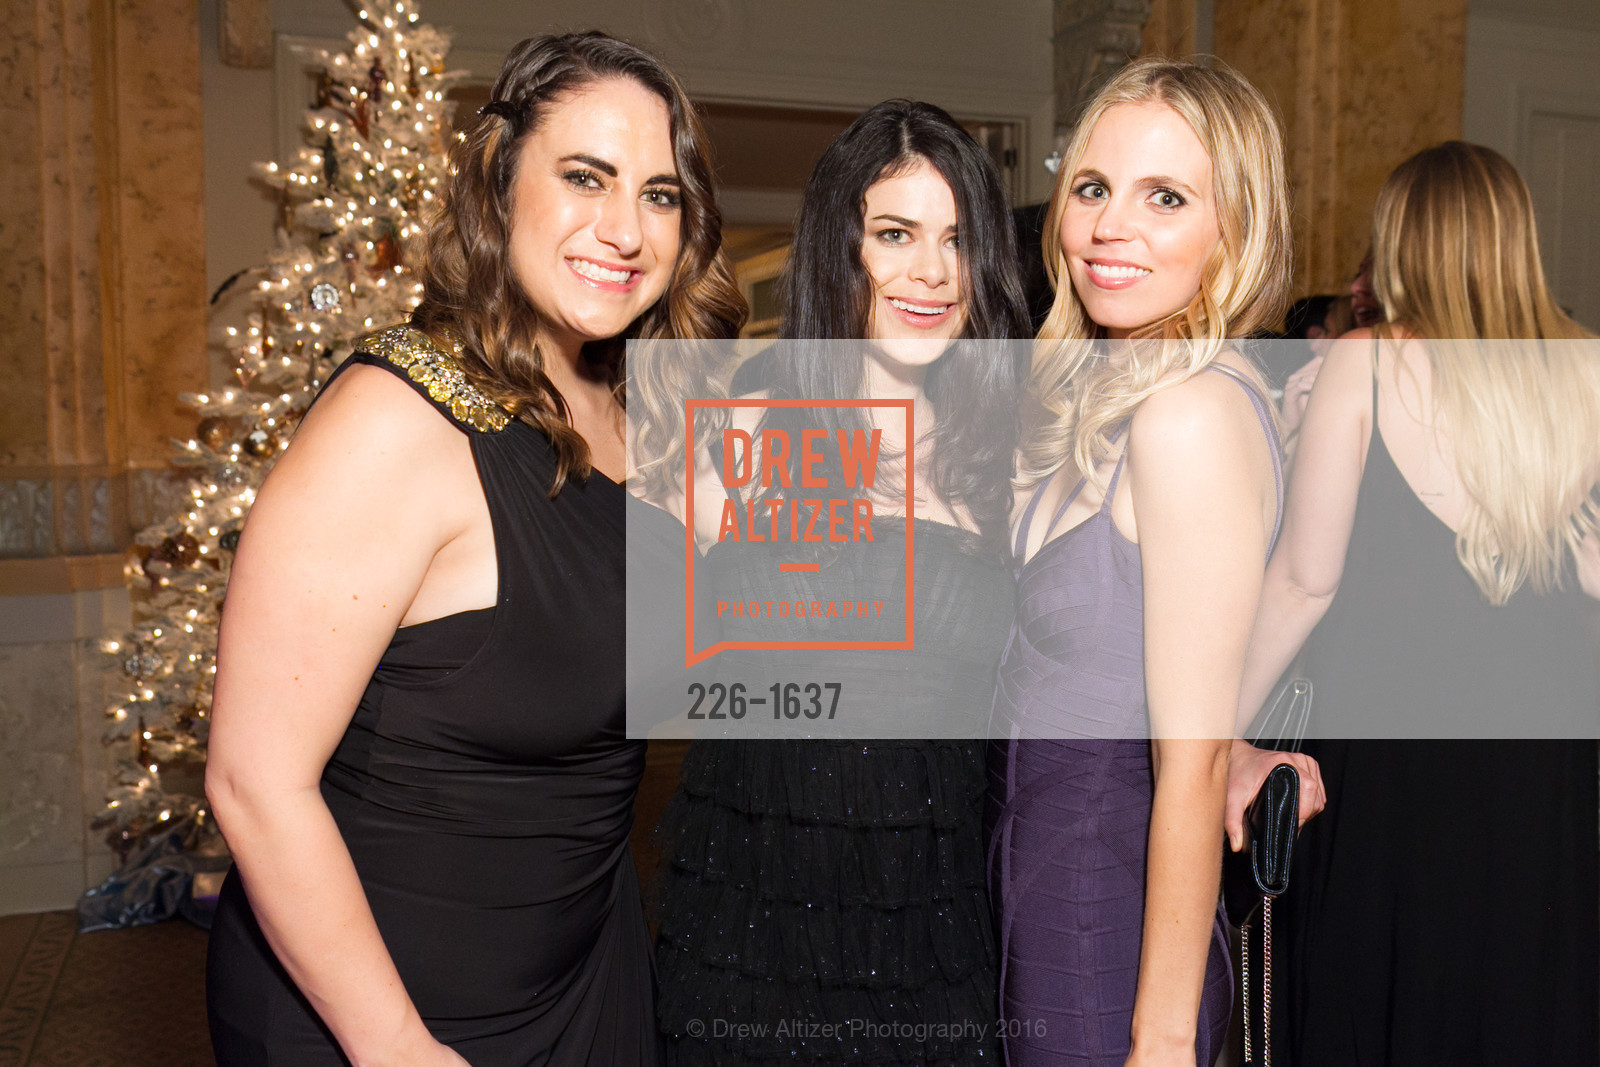 Kathleen Roberts, Natalie Himes, Taylor Magnuson, Spinsters Holiday event, Metropolitan Club. 640 Sutter St, San Francisco, CA 94102, December 10th, 2016